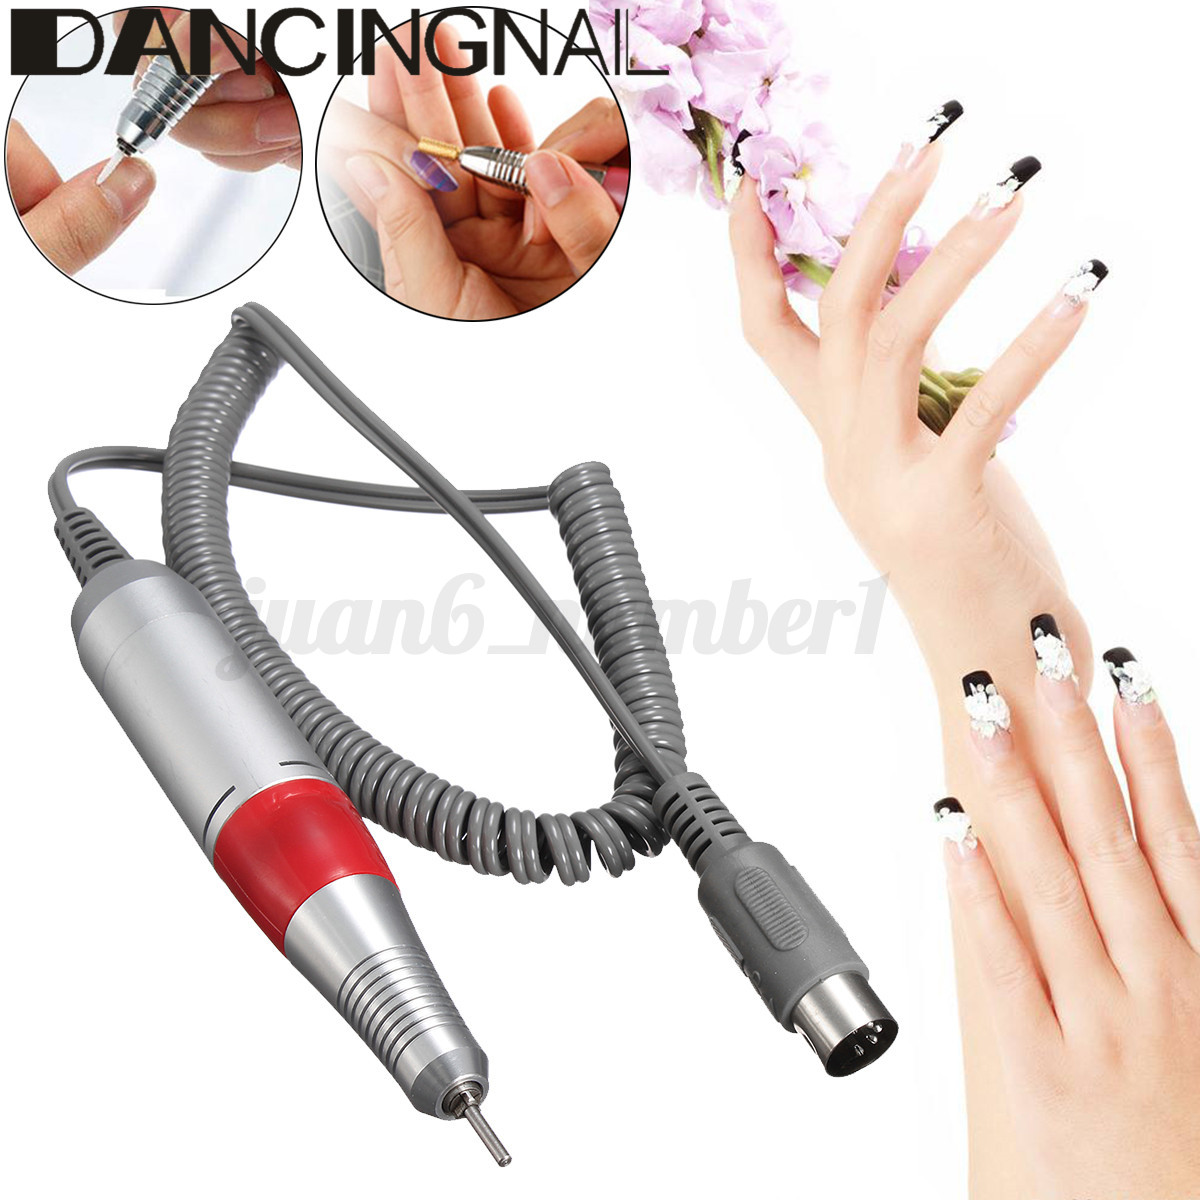 Portable Rechargeable 30000RPM Electric NAIL FILE DRILL Manicure ...